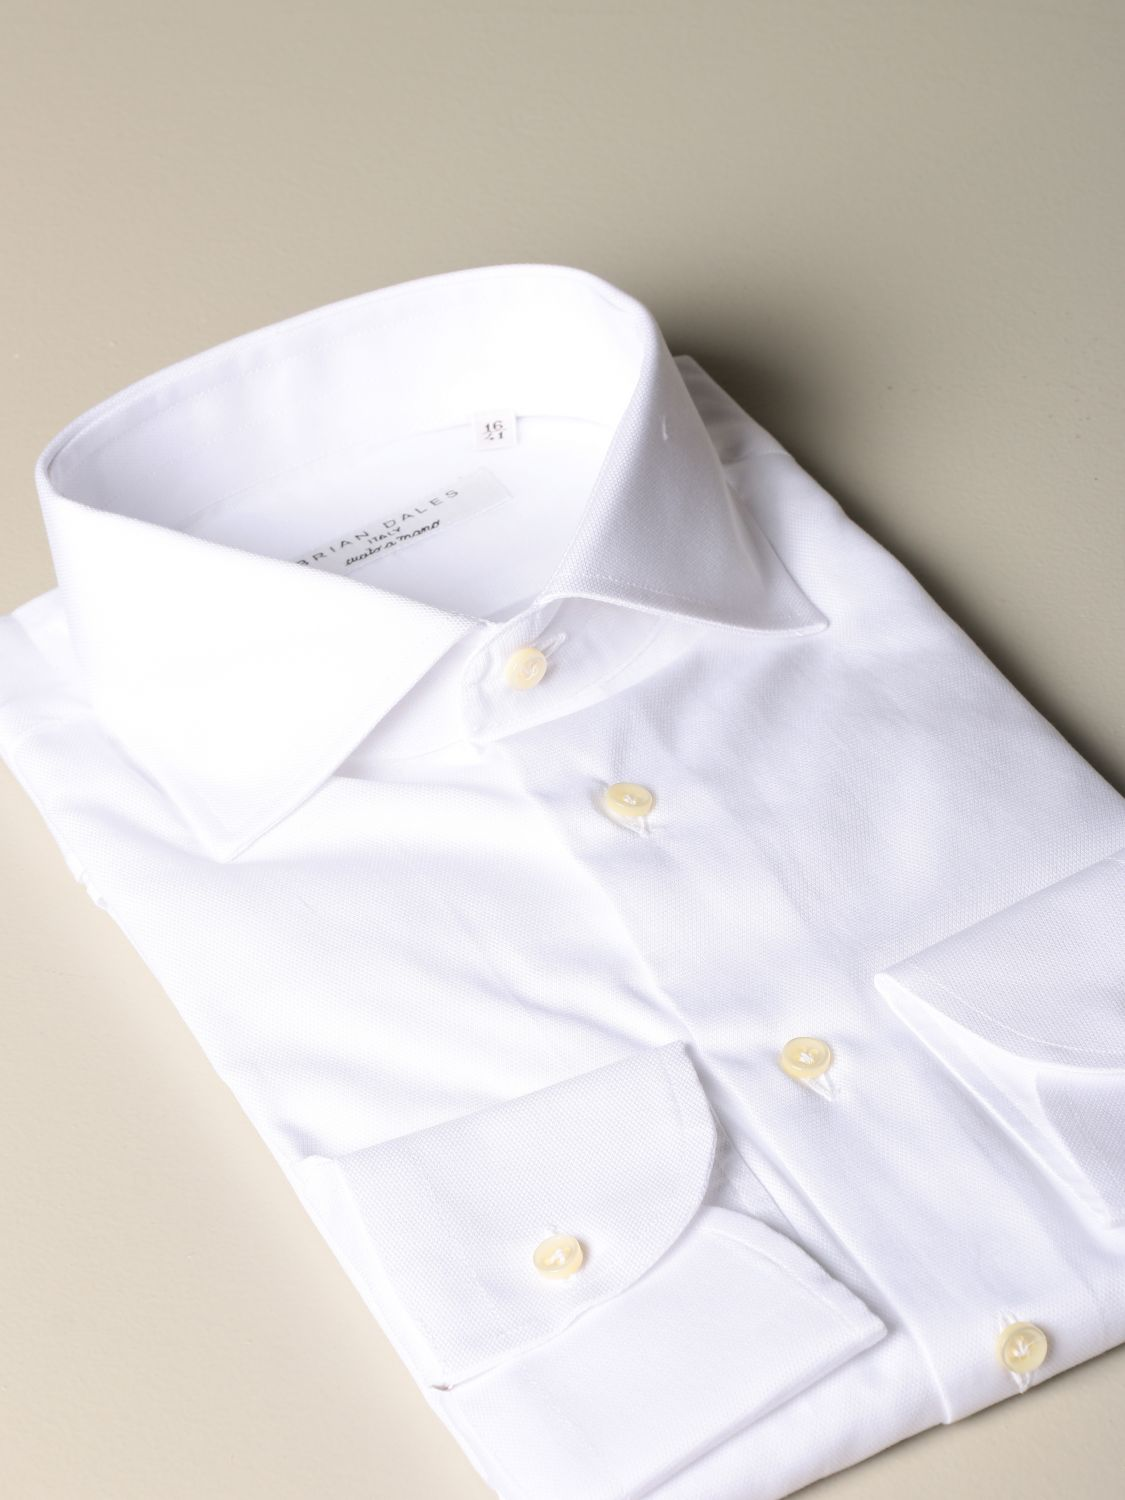 Shirt Brian Dales Camicie: Brian Dales Camicie tailored shirt in textured cotton with Italian collar white 2